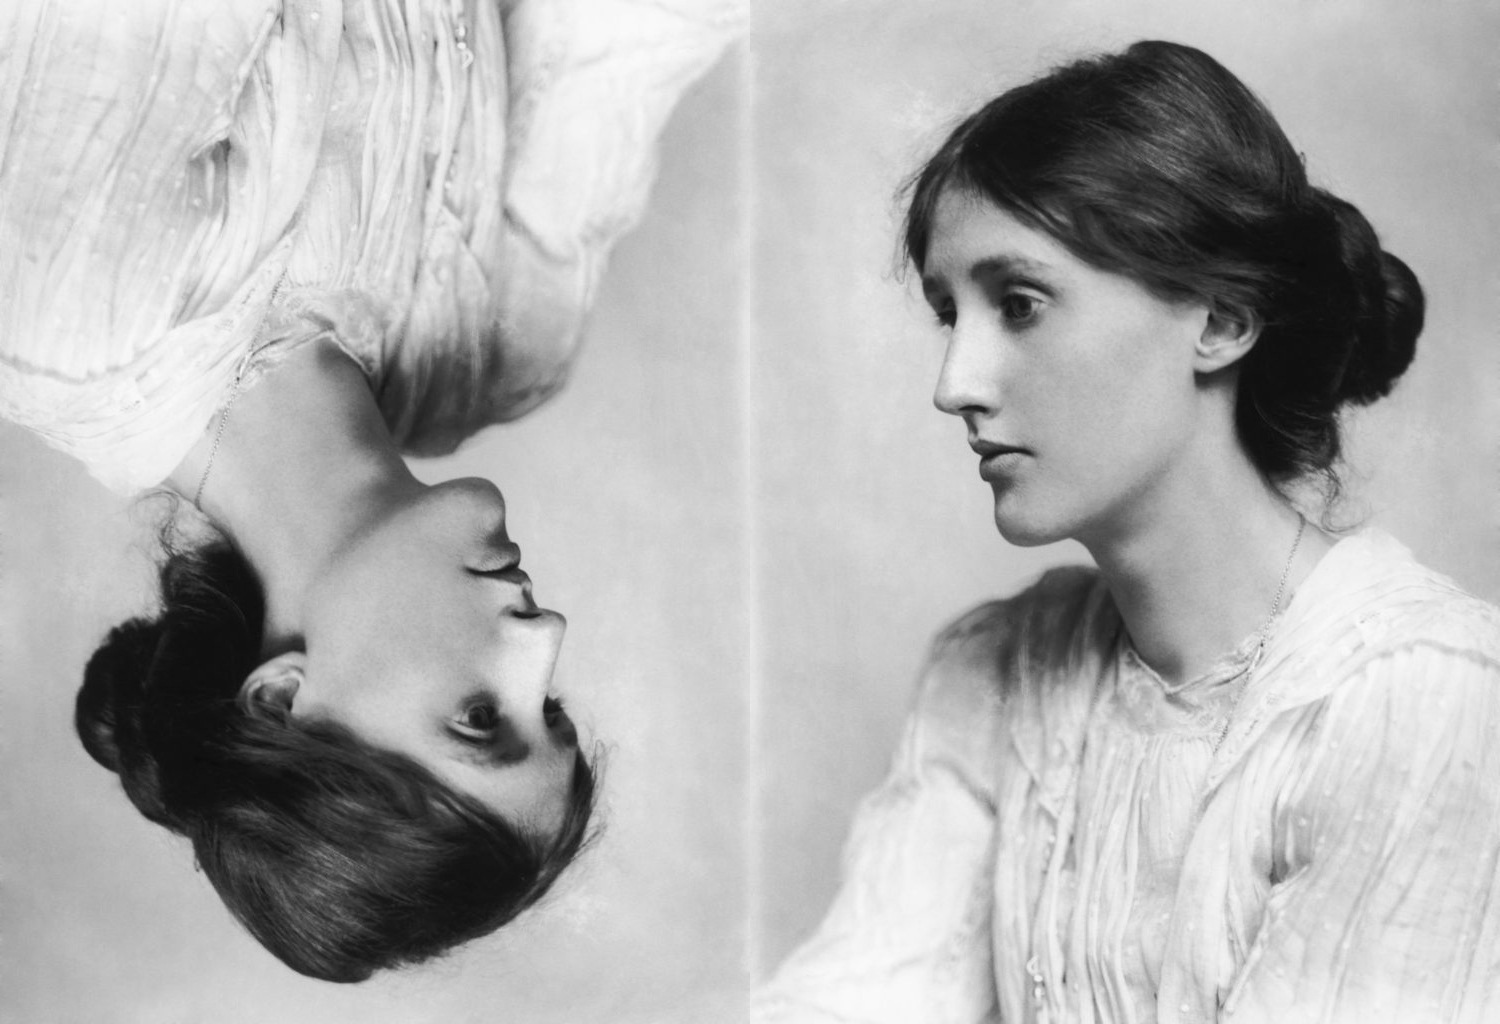 Author-Photo-Virginia-Woolf-©-George-Charles-Beresford-750x1024 copy